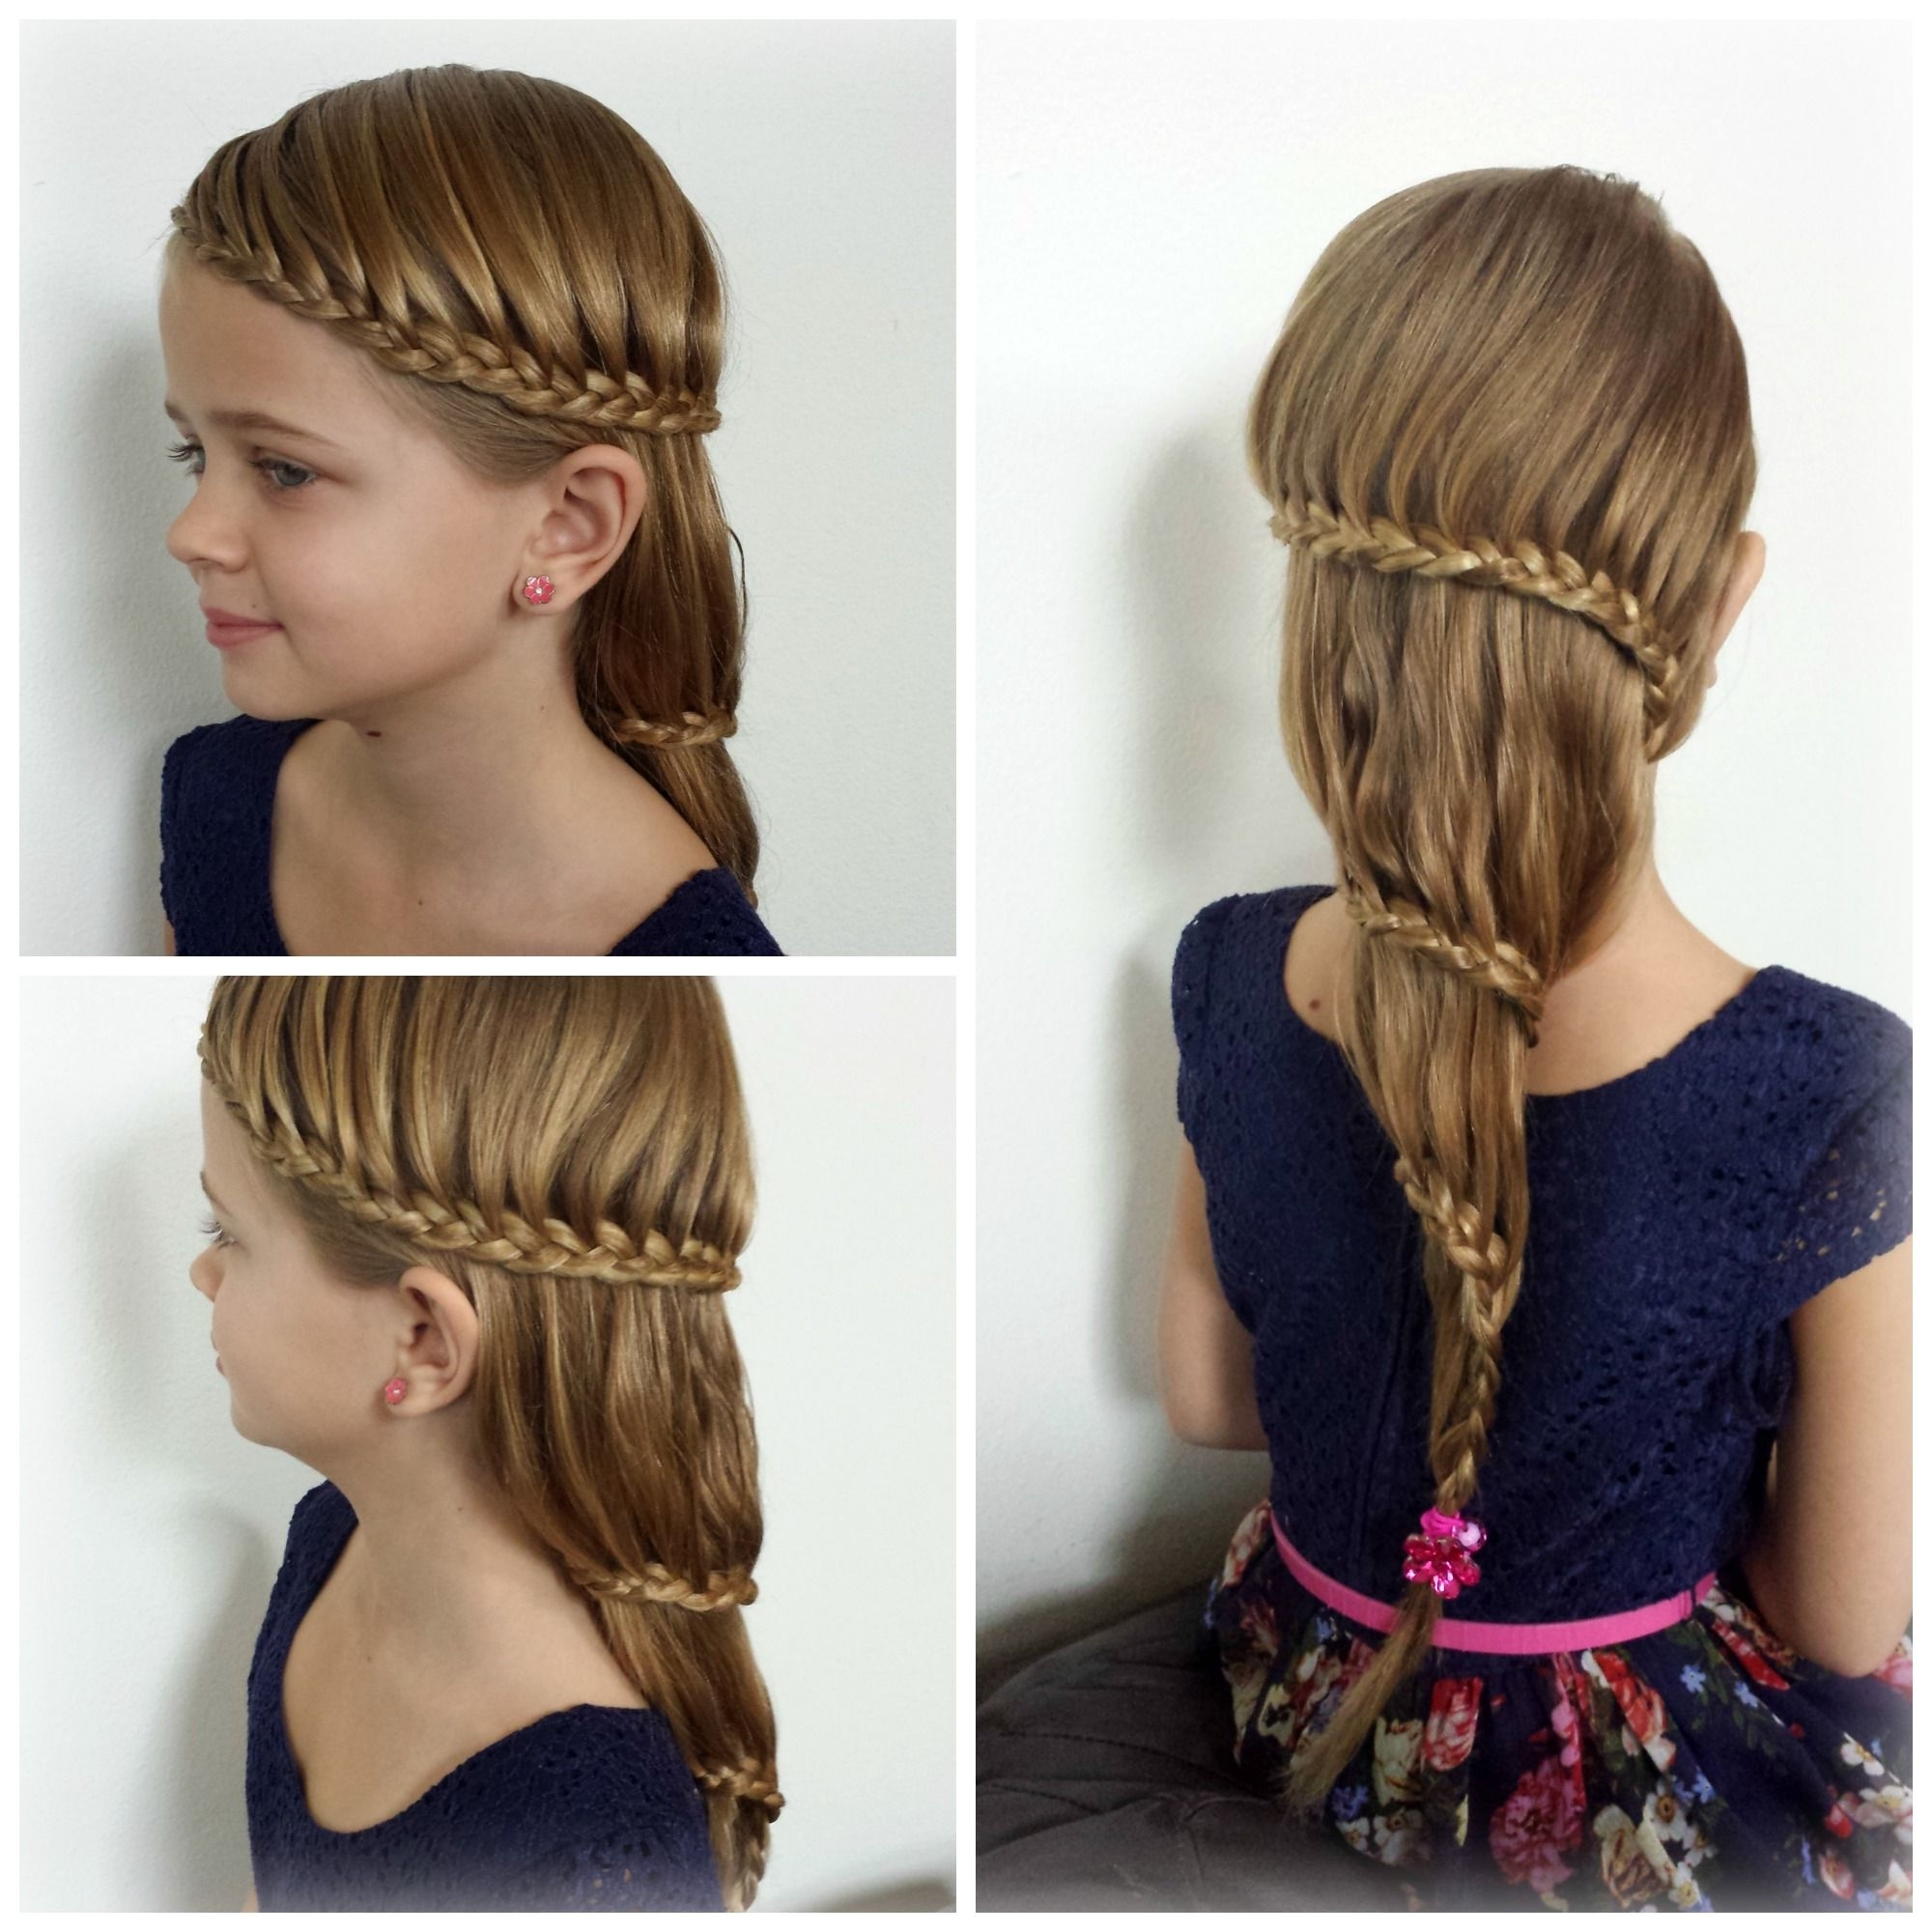 2018 Regal Braided Up Do Ponytail Hairstyles For Carousel Braid. This Regal Braid Is A Show Stopper (View 4 of 20)